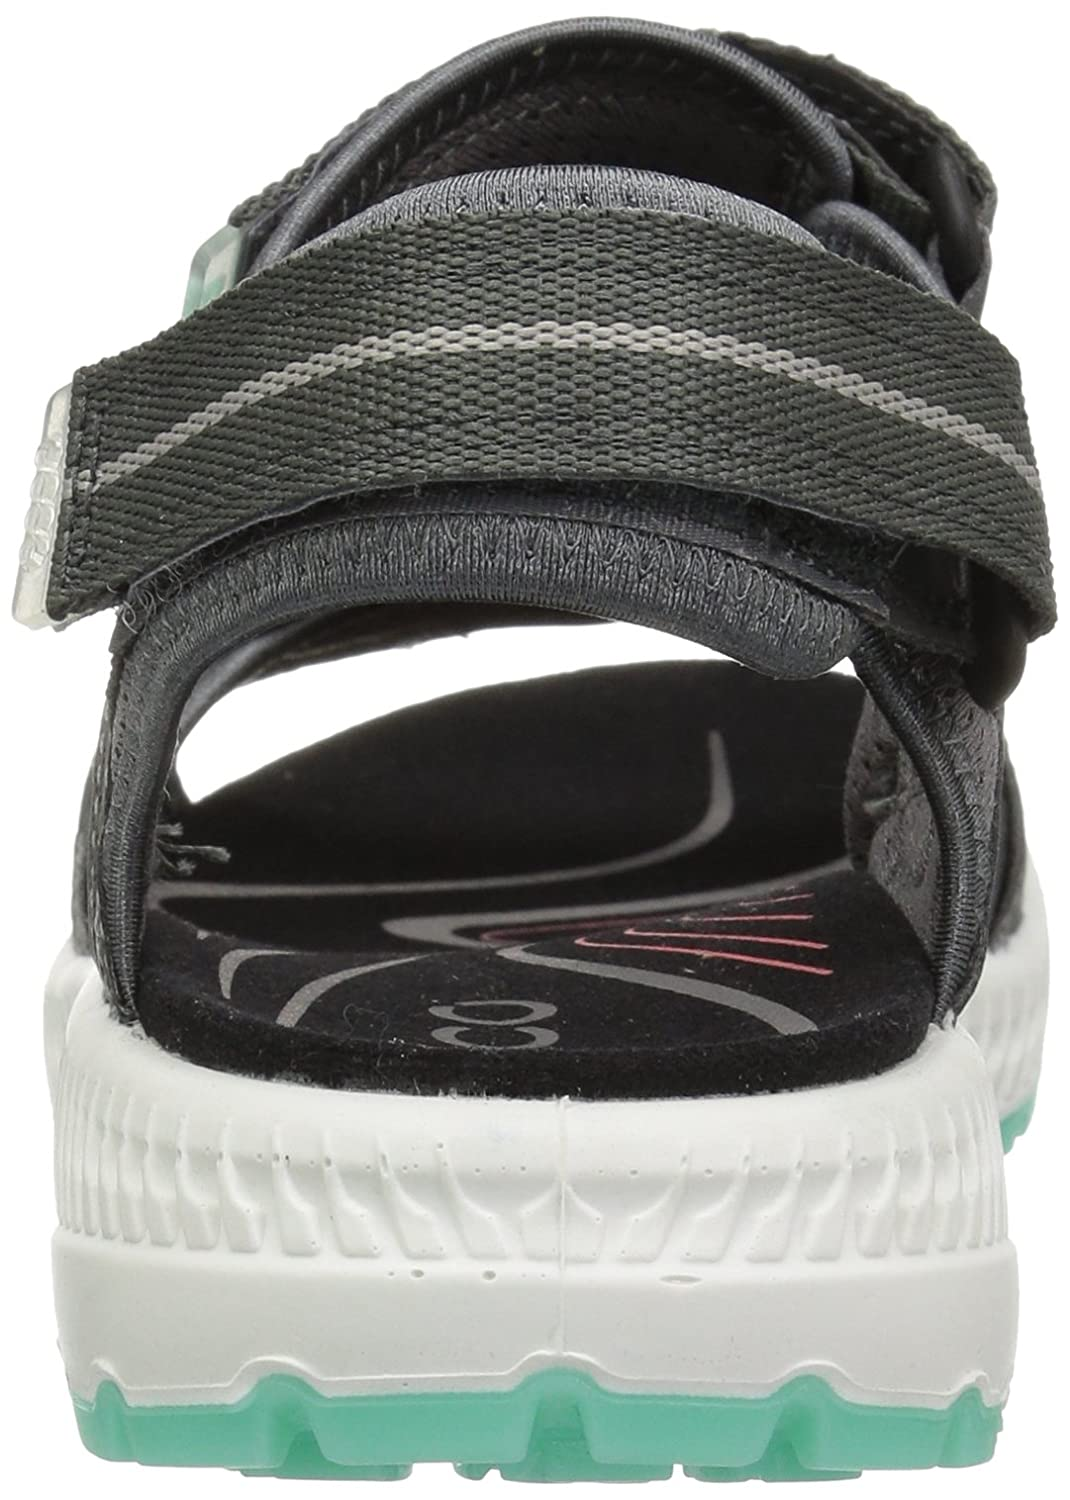 ECCO Women's Terra 3S Athletic Sandal B072BGK8S2 38 EU/7-7.5 M US|Dark Shadow/Emerald